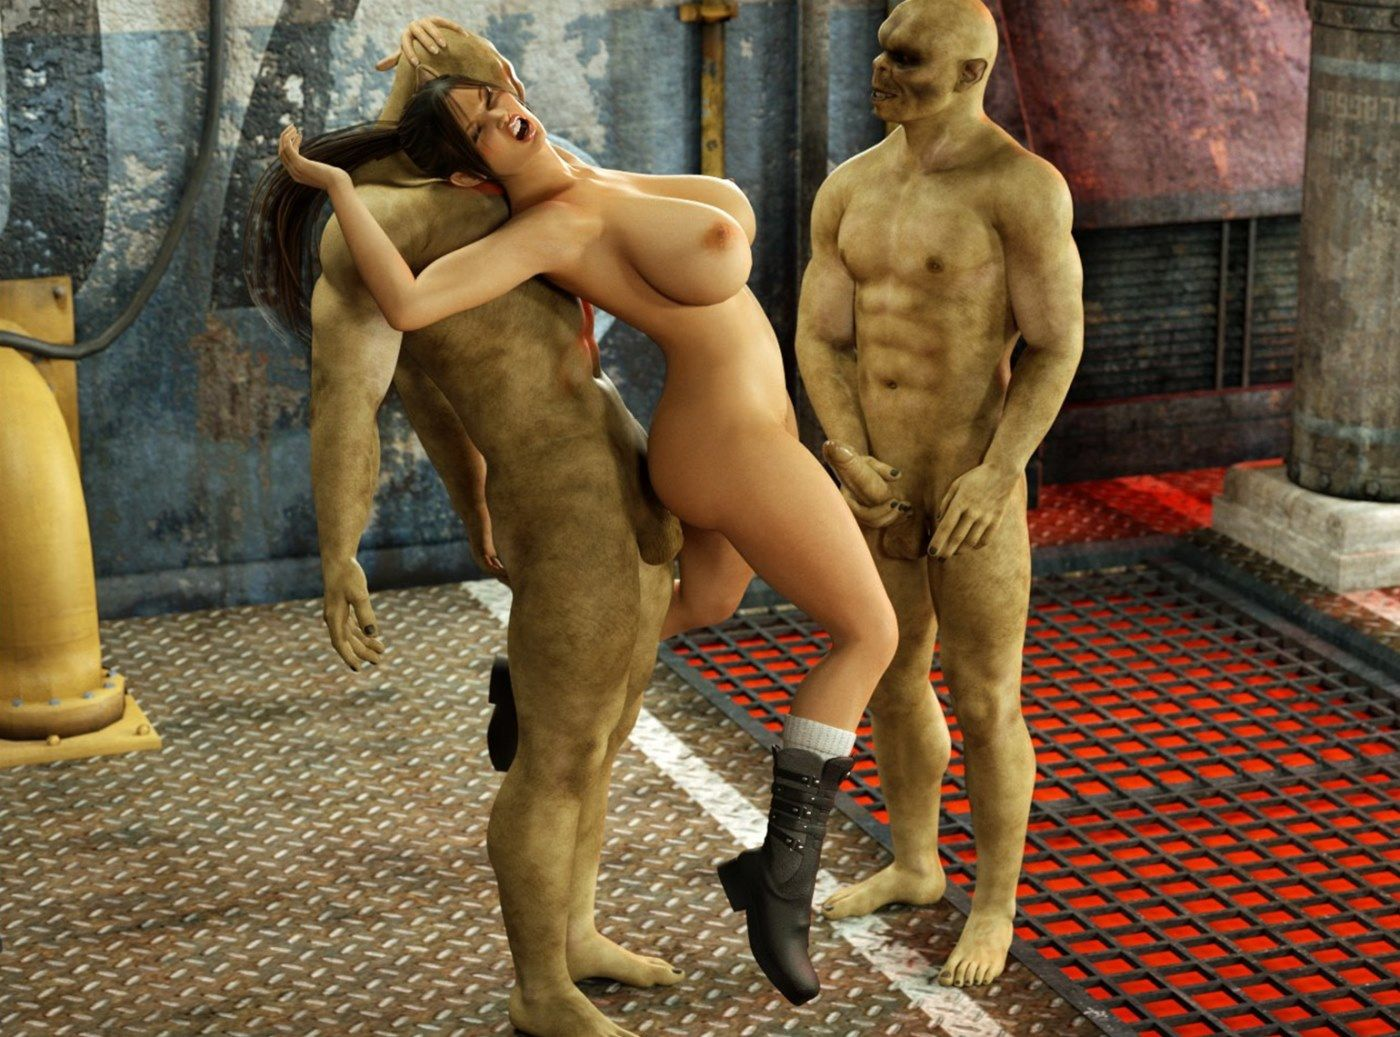 Virtual monster sex porn movie porno scene